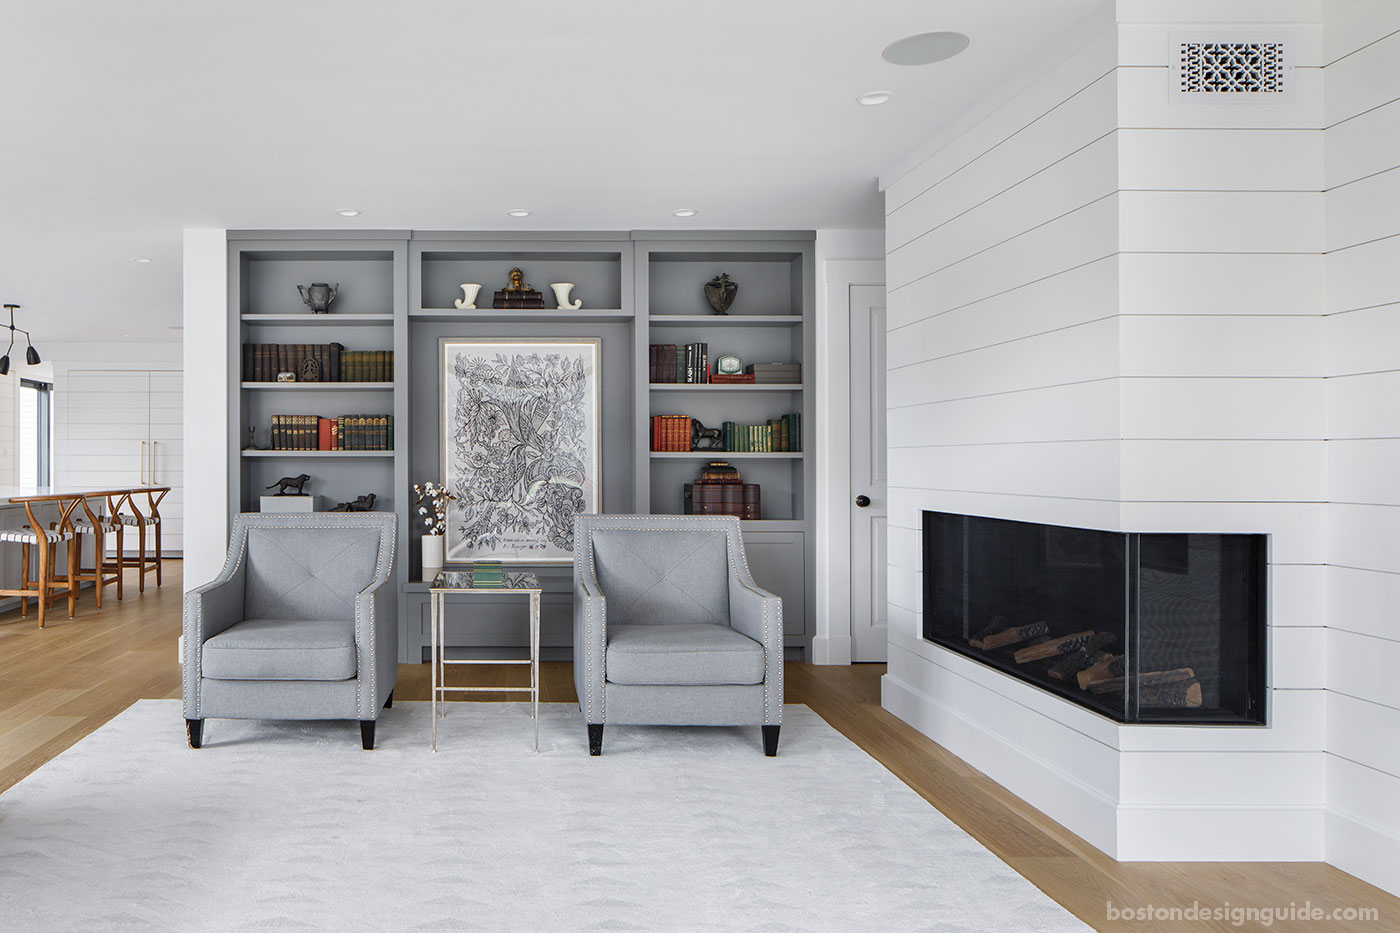 Custom New England living room by custom home builder McCormack Builders with nickel gap wood paneling